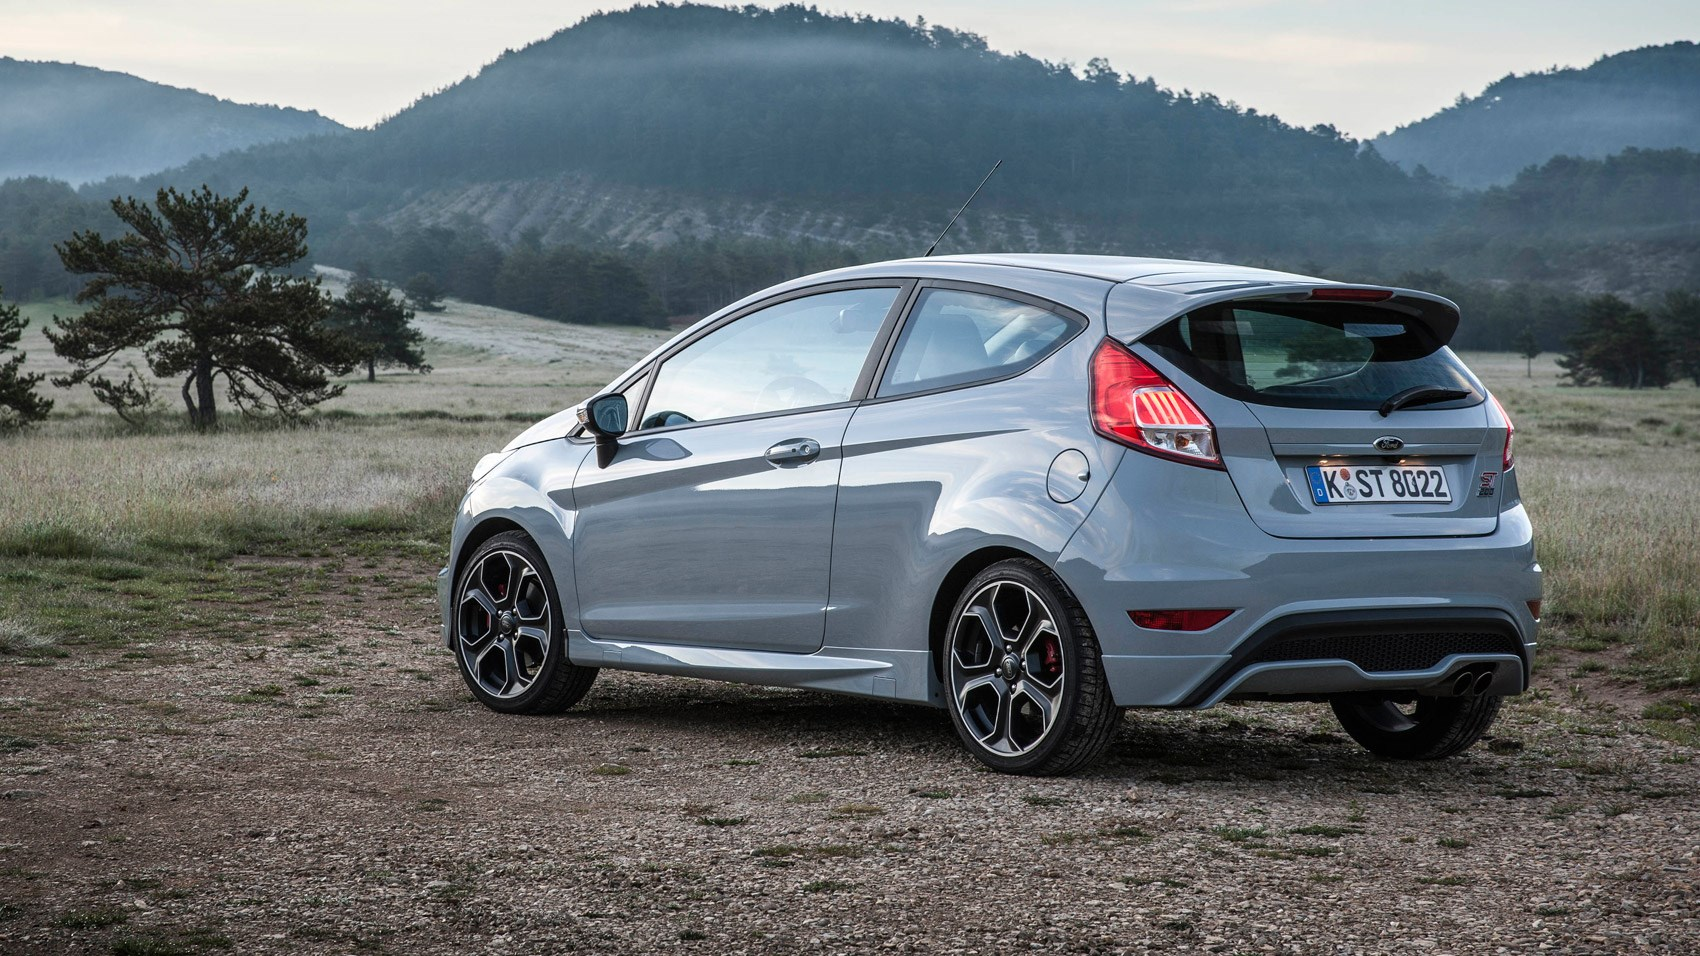 ford fiesta st200 2016 review car magazine. Black Bedroom Furniture Sets. Home Design Ideas